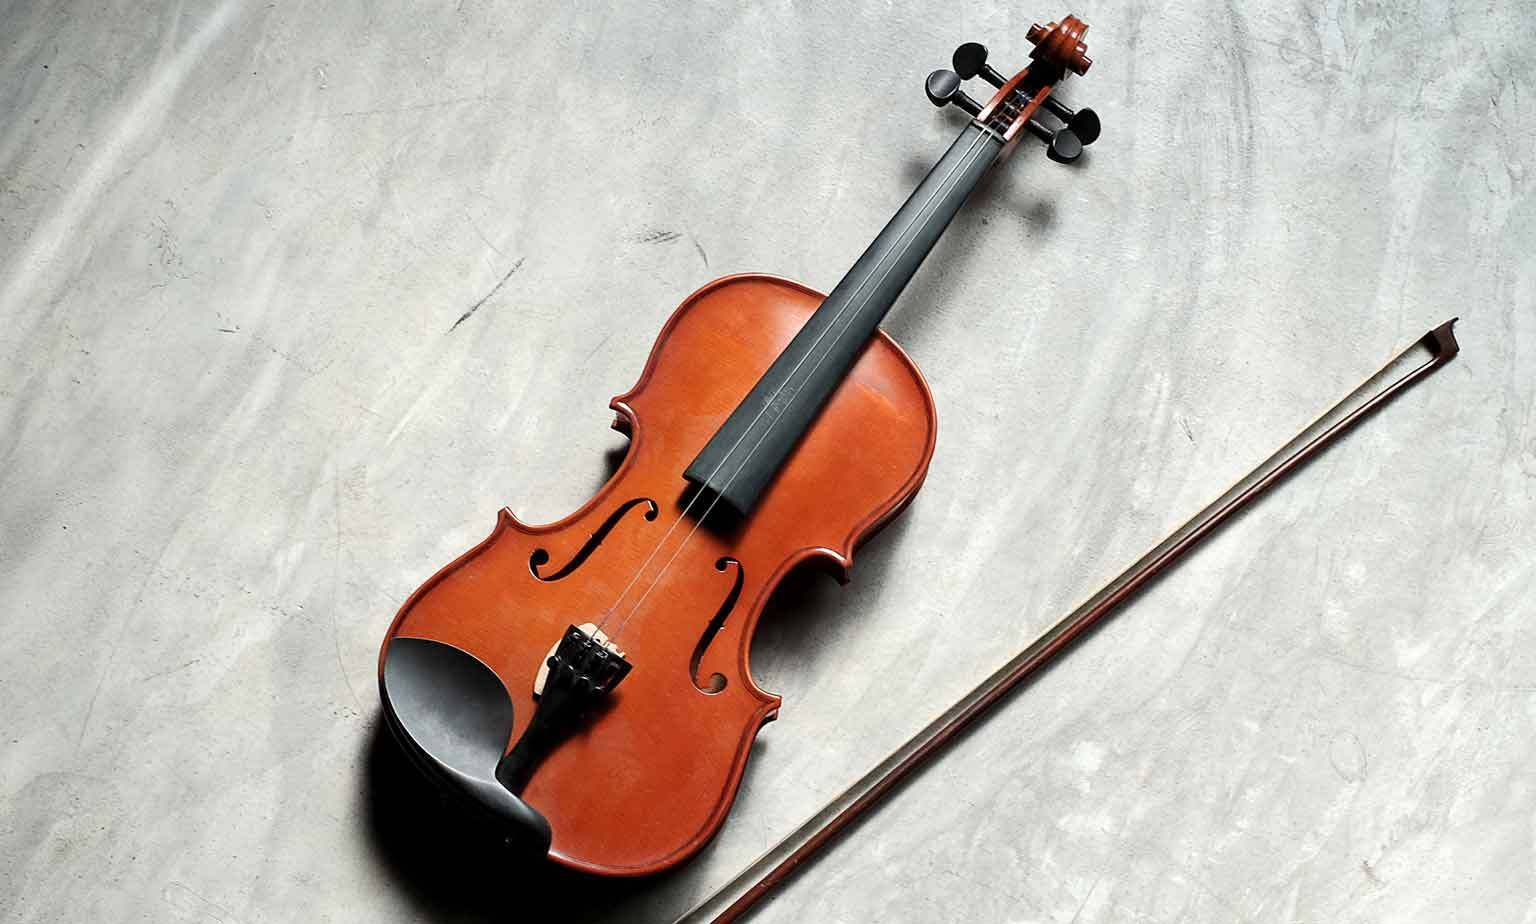 Pre-Owned String Instruments